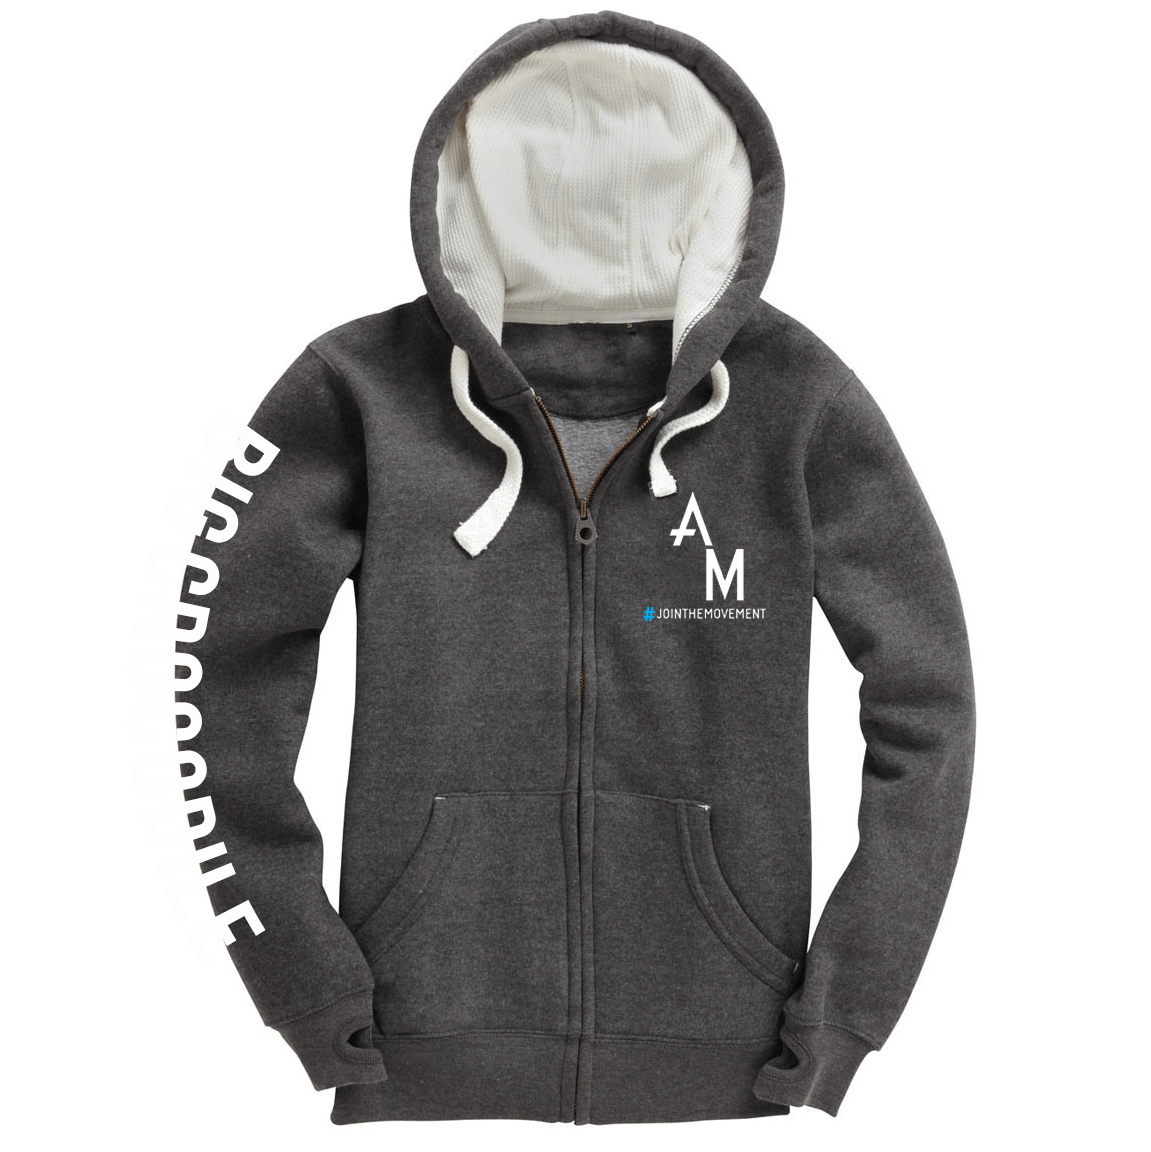 Athlete Movement Luxury Zip Up Hoodie - Big Crocodile